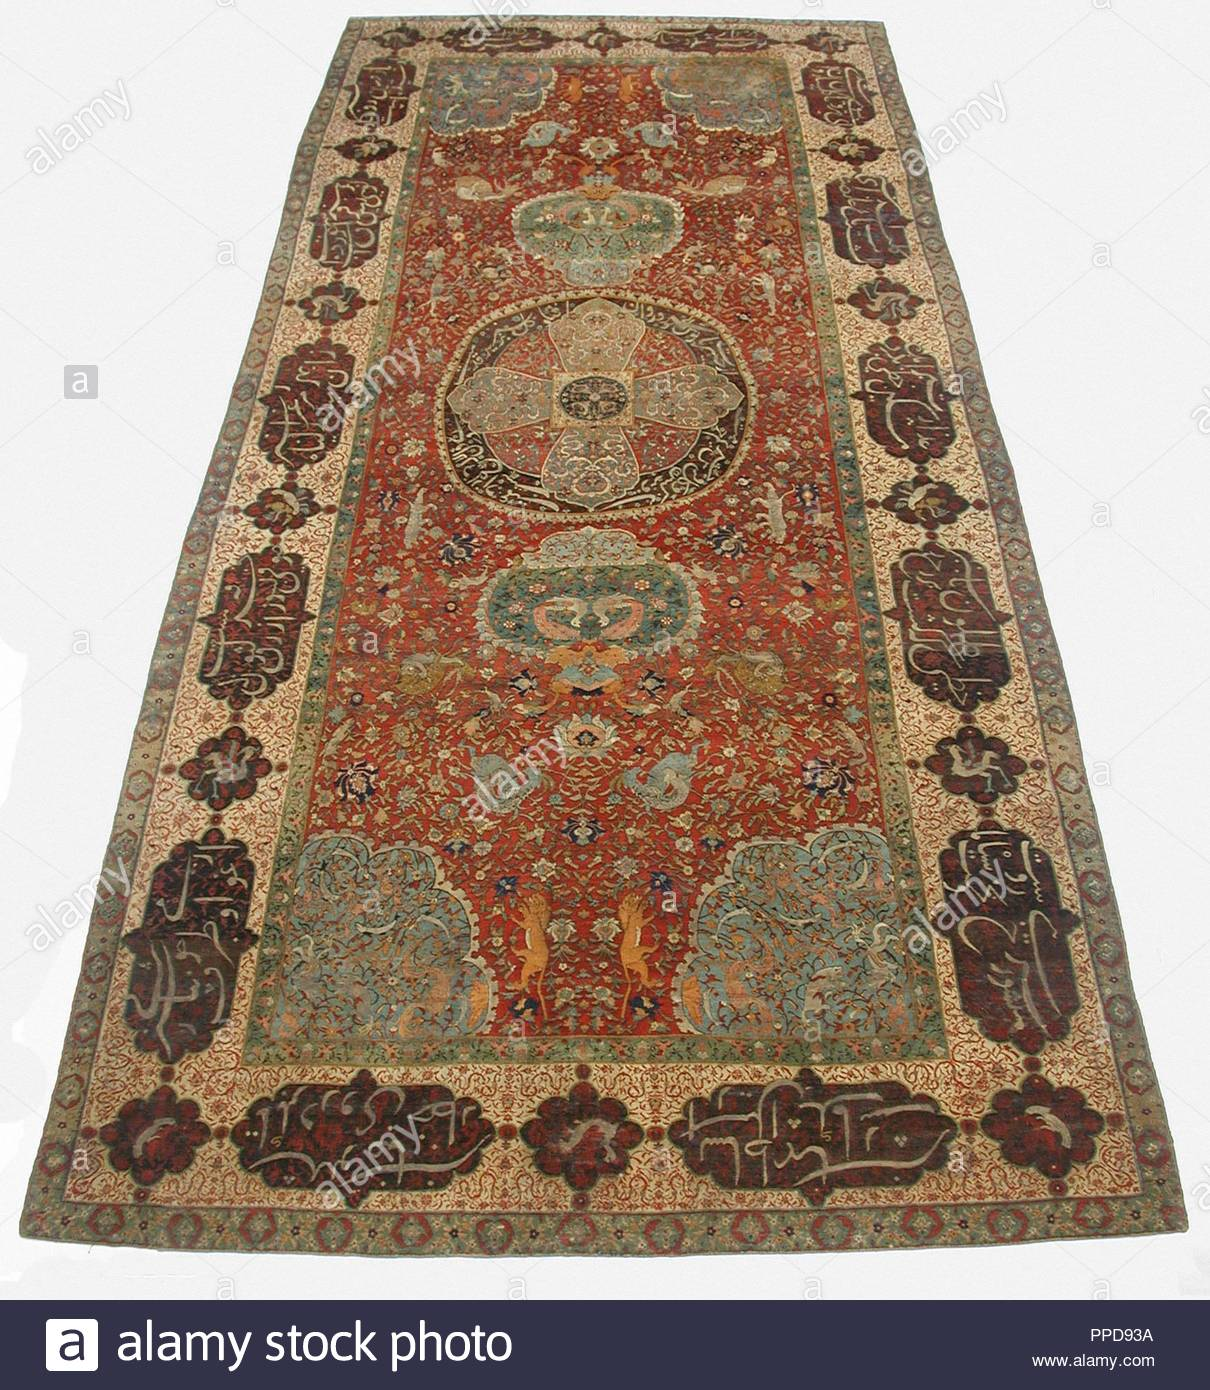 Carpet 16th Century Attributed To Iran Silk Warp And Weft Wool